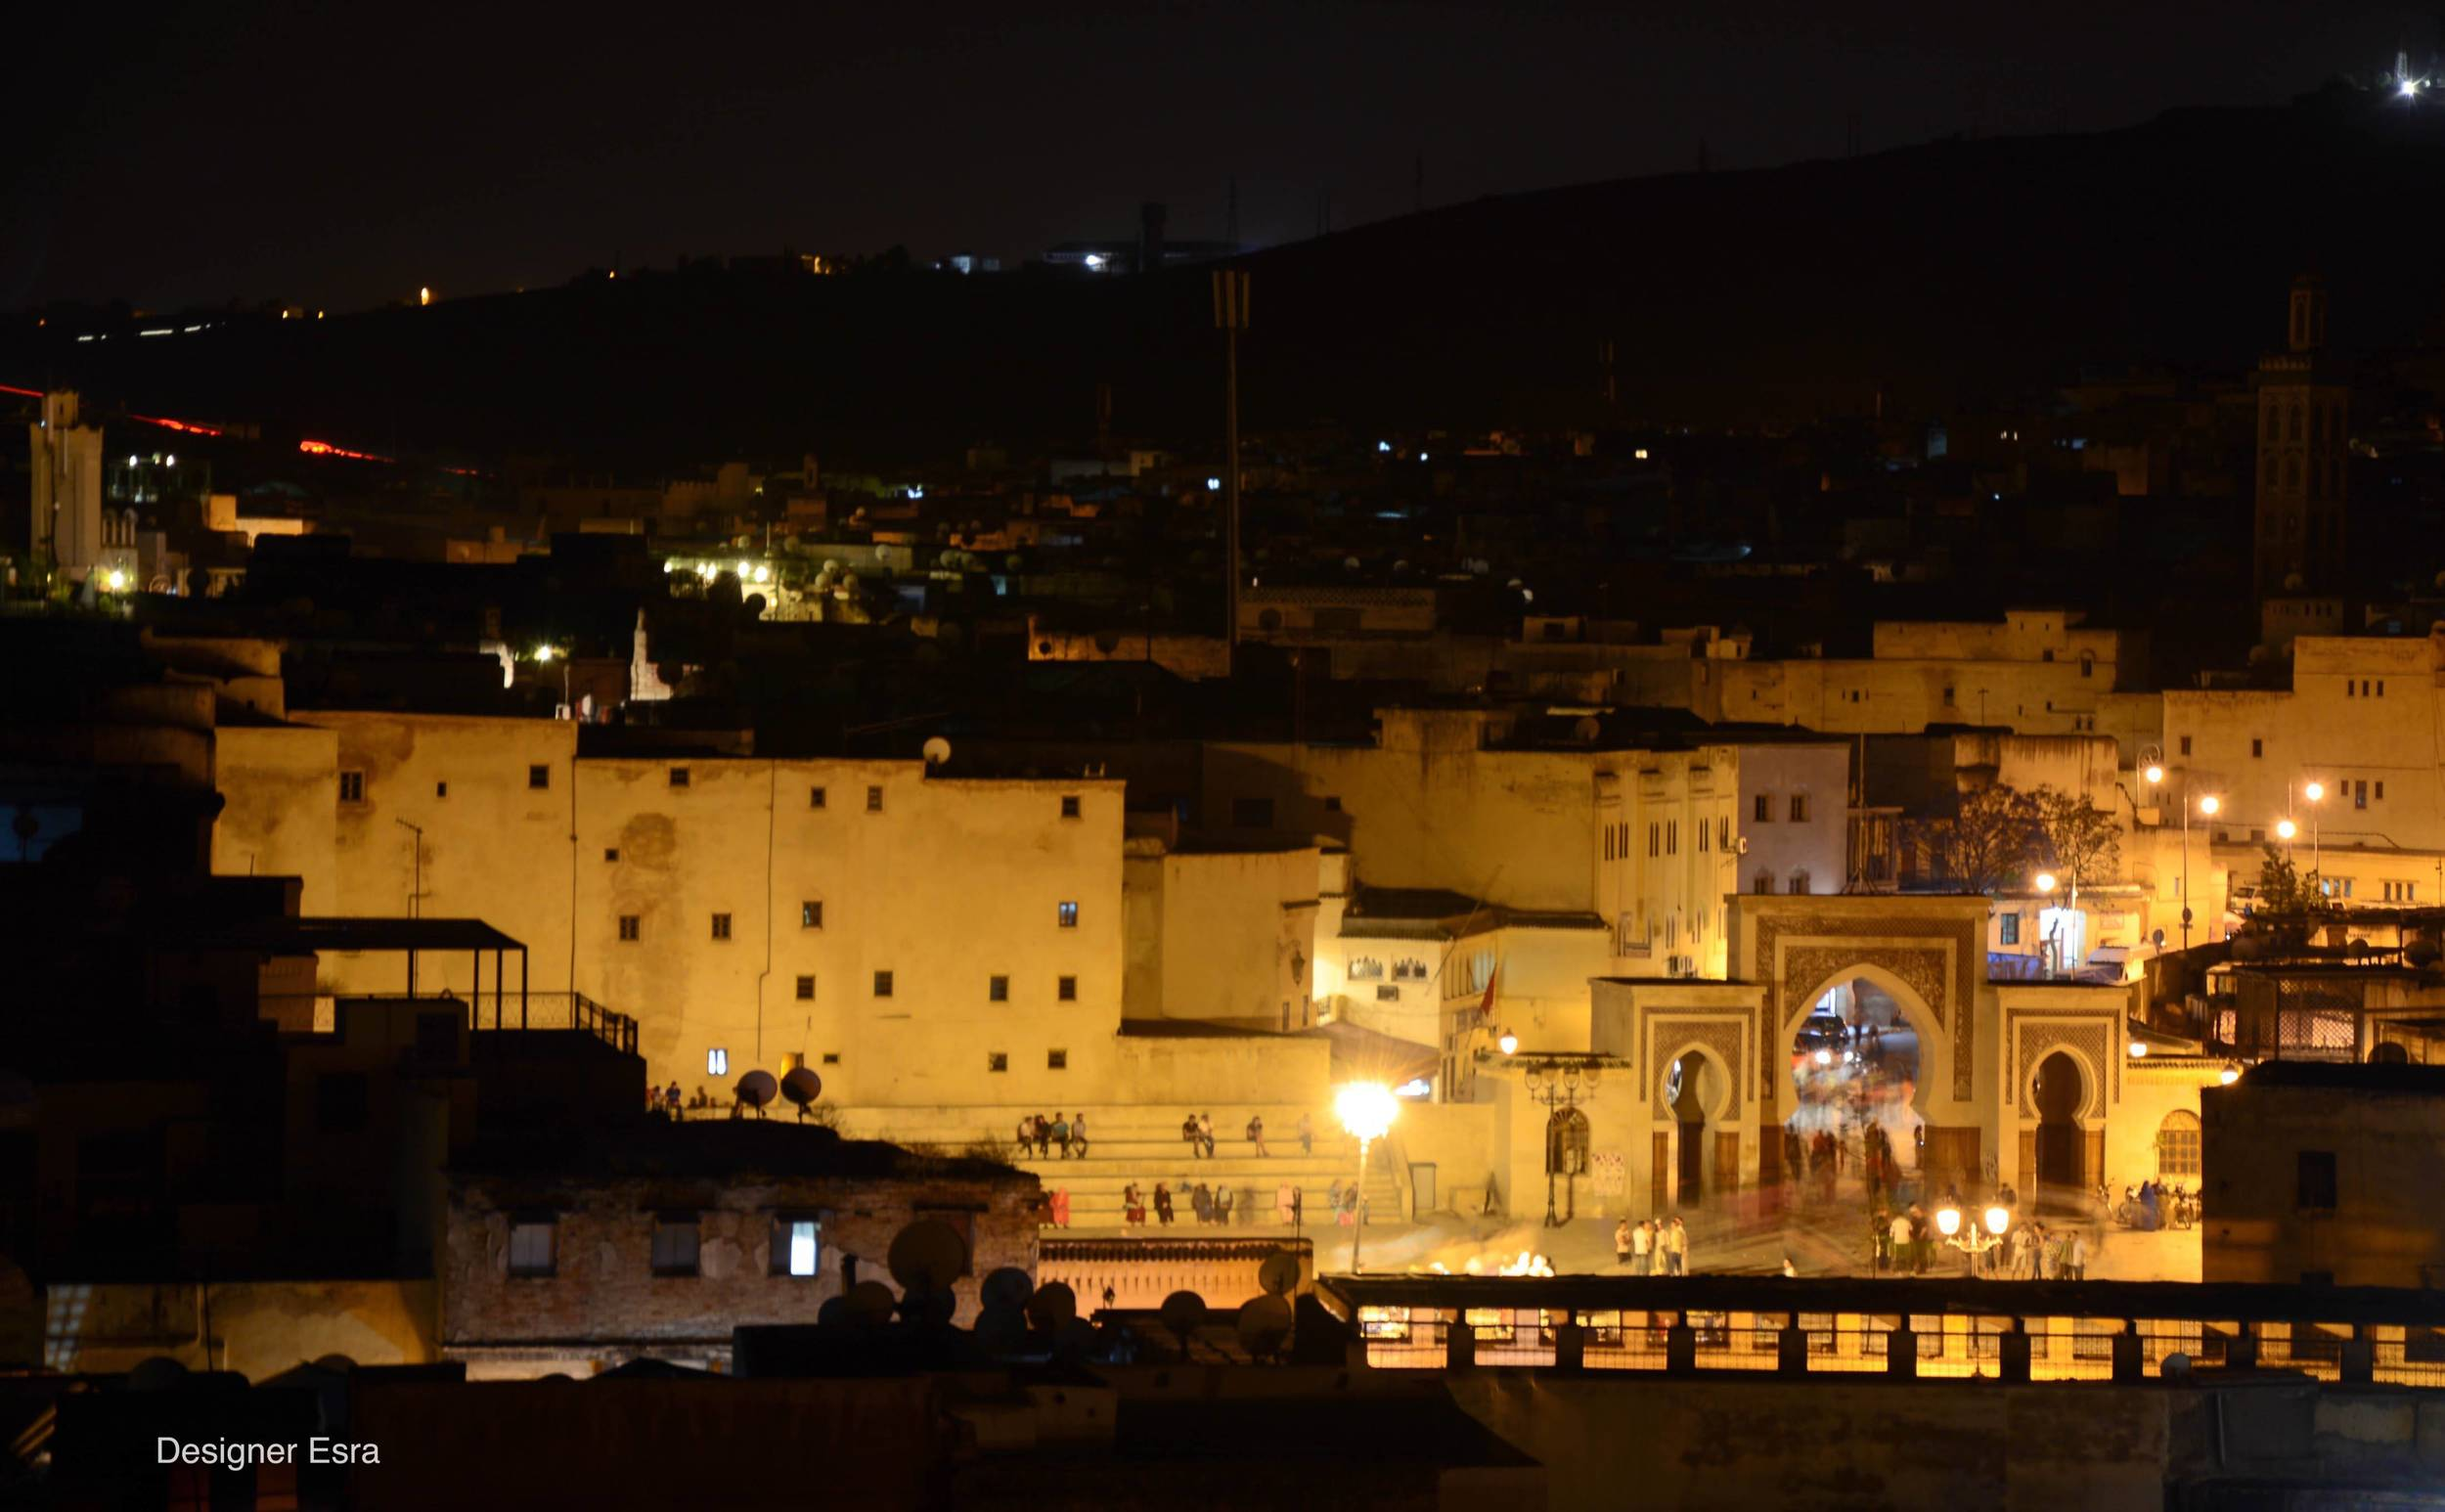 Terrace View of Fes at night